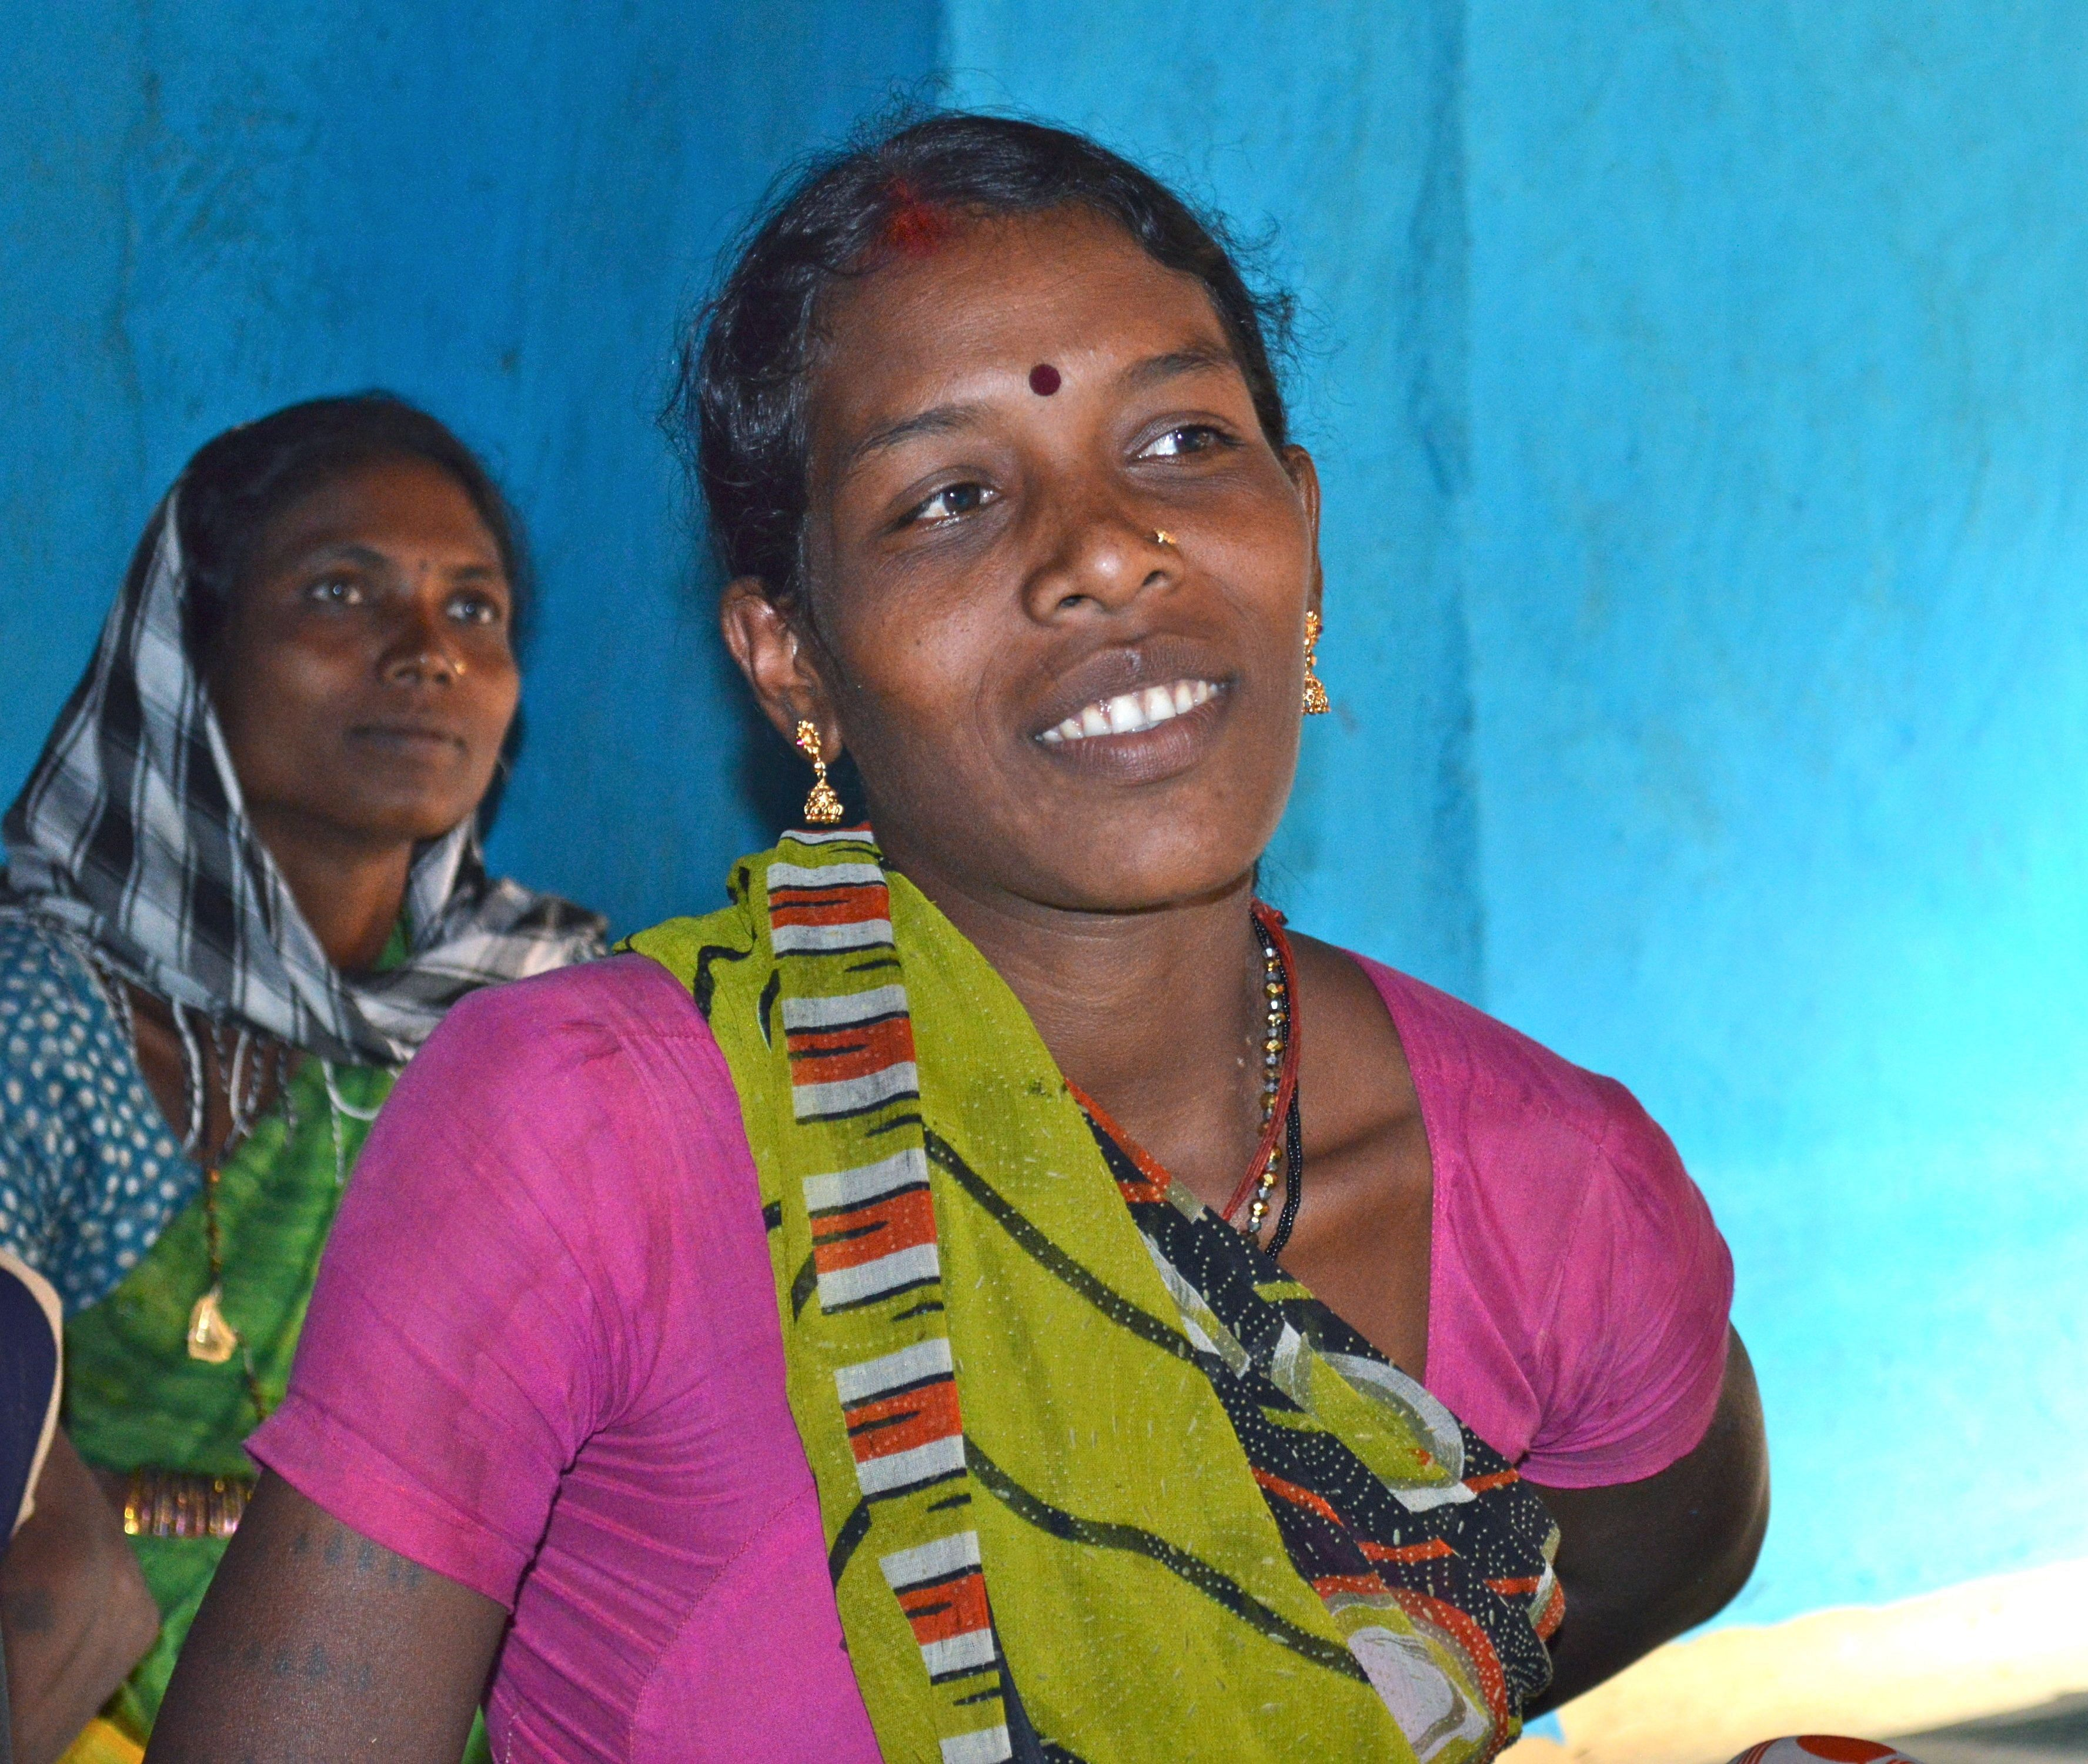 Radhika Hundra, a rice farmer in Pandarigota, now knows about her rights and entitlements under the PDS and ICDS (Integrated Child Development Services).